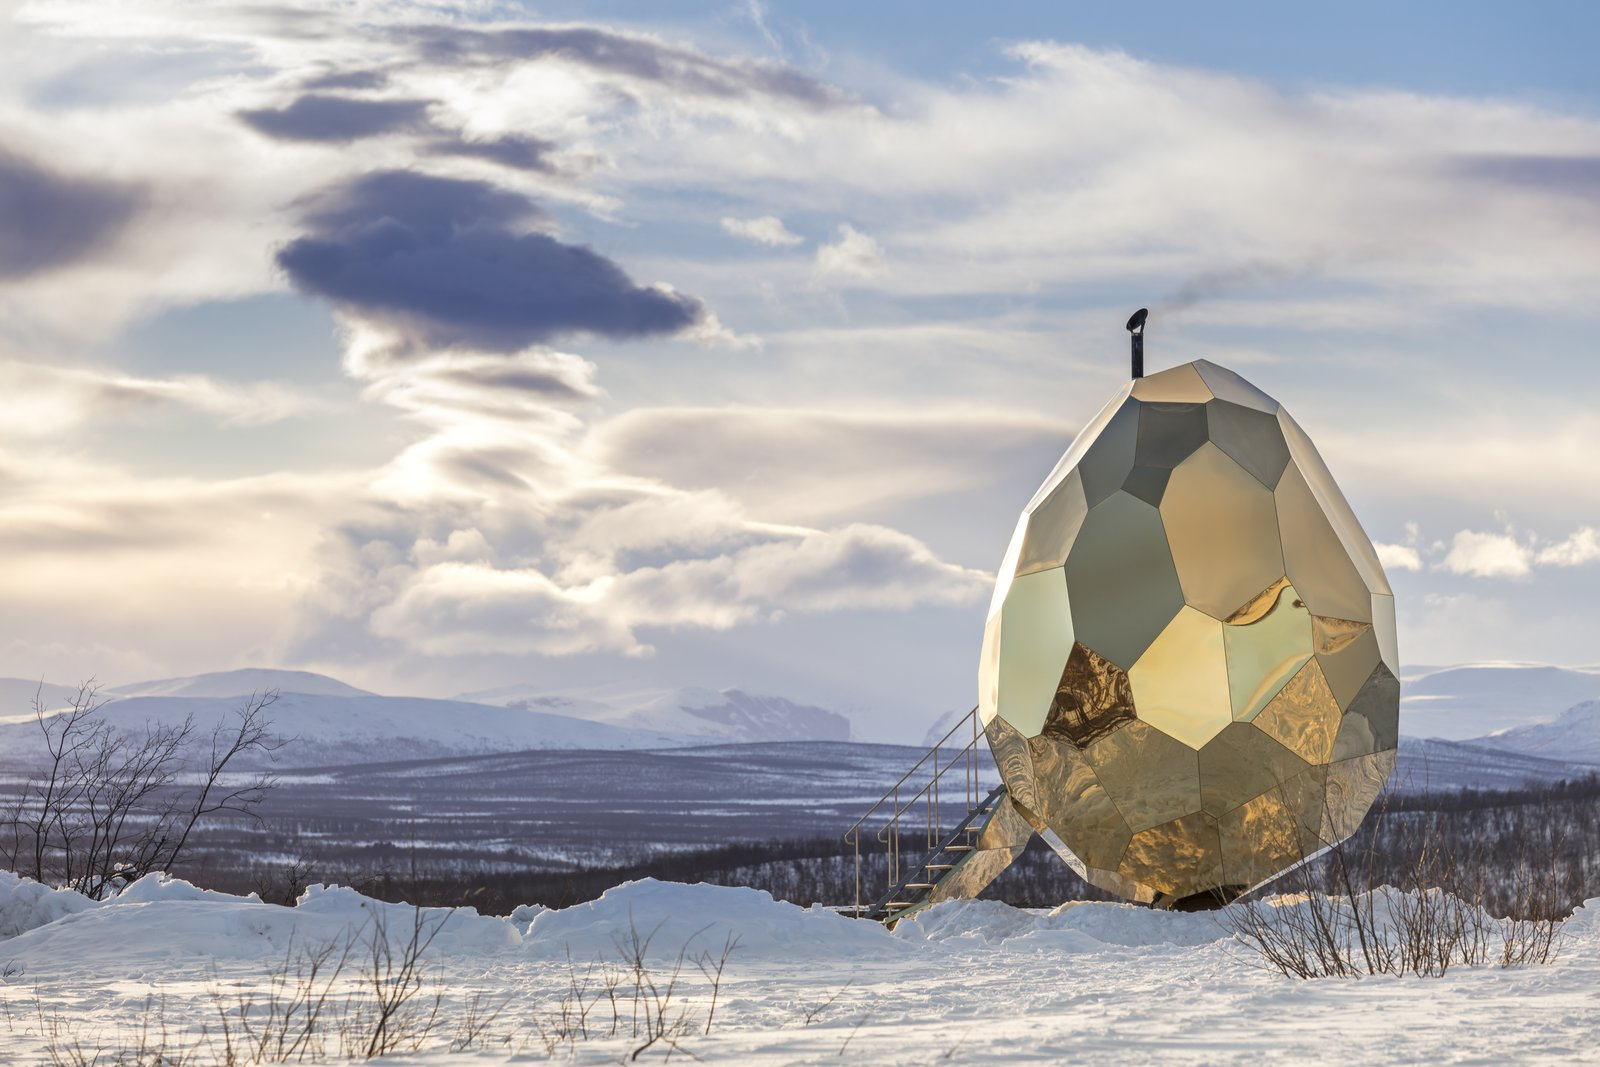 Photo 1 of 6 in A Golden, Egg-Shaped Sauna Signifies the Rebirth of a Swedish Mining Town